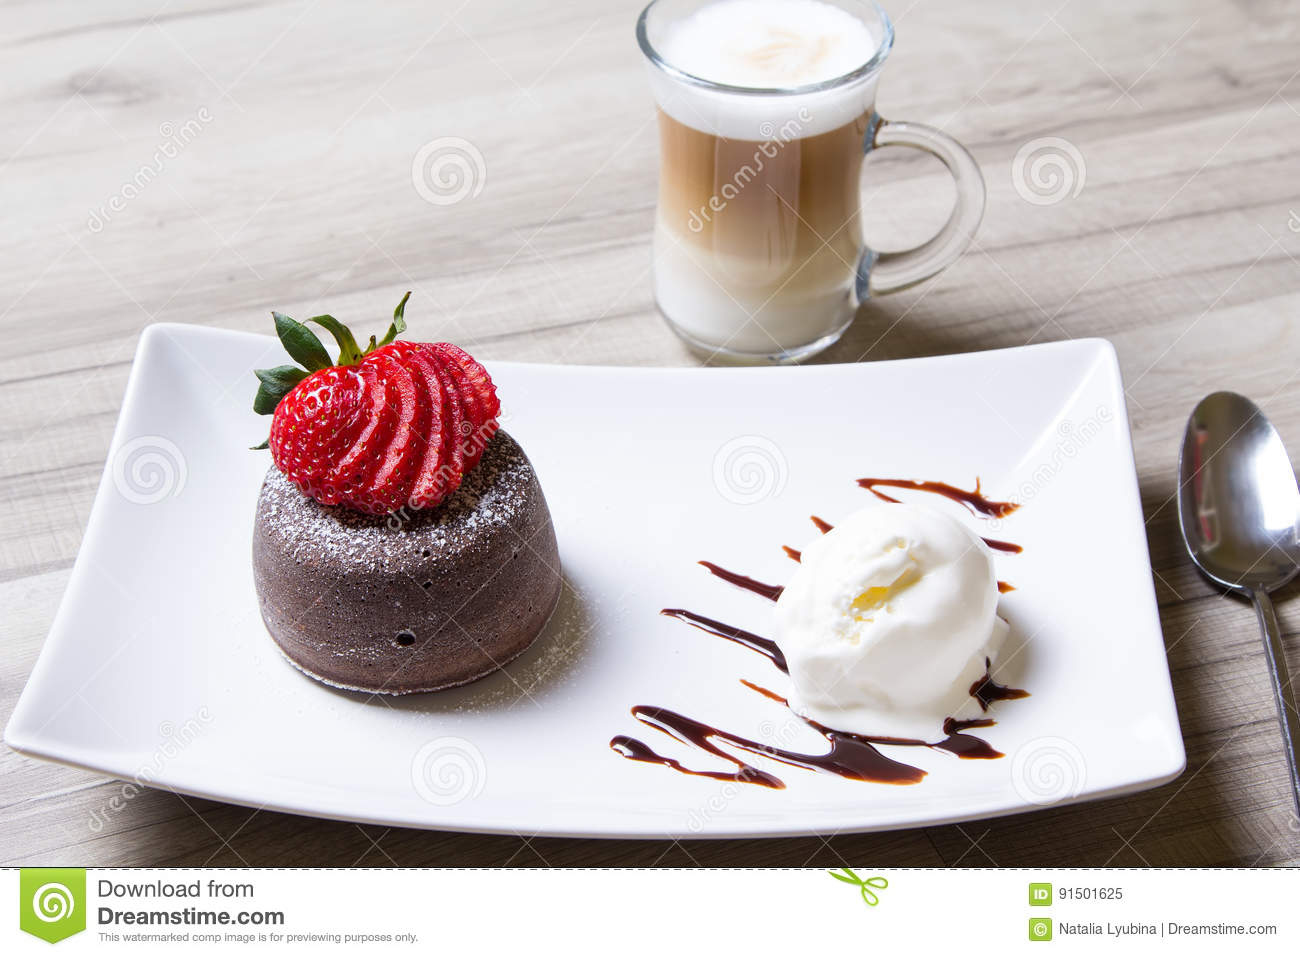 Chocolate Fondant Lava Cake With Strawberries And Ice